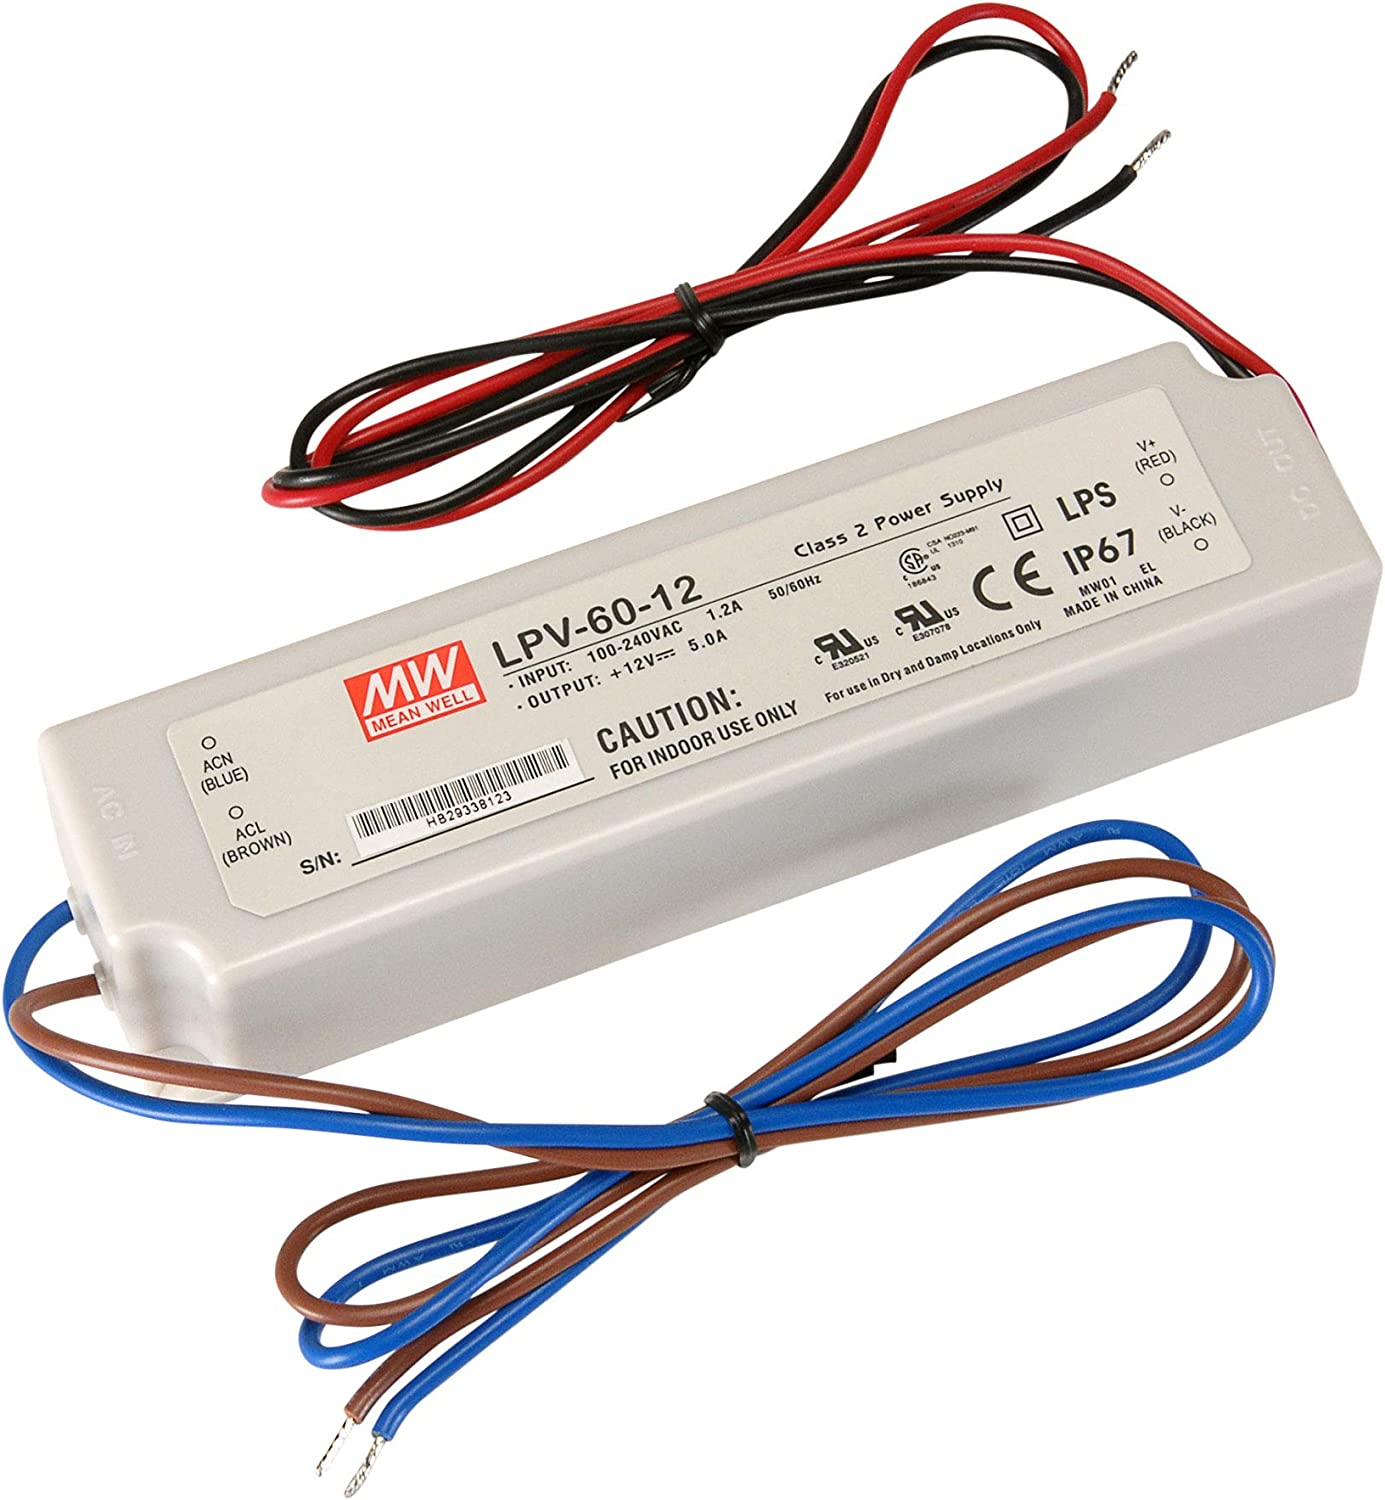 Mean Well LPV-60-12 LED Power Supply 12V 60W IP67 Waterproof Driver Current